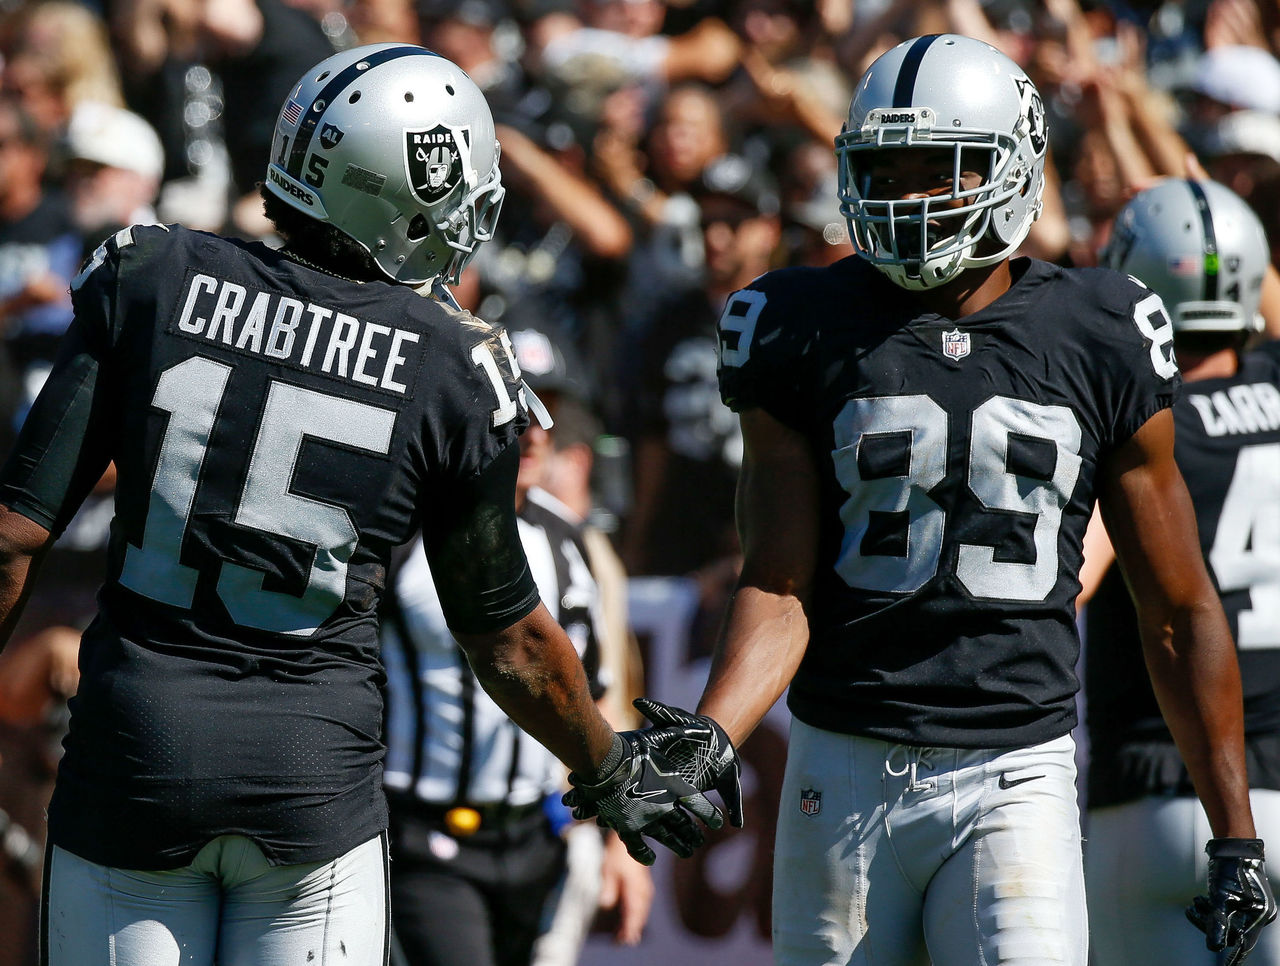 Cropped_2017-09-17t222452z_1032619232_nocid_rtrmadp_3_nfl-new-york-jets-at-oakland-raiders